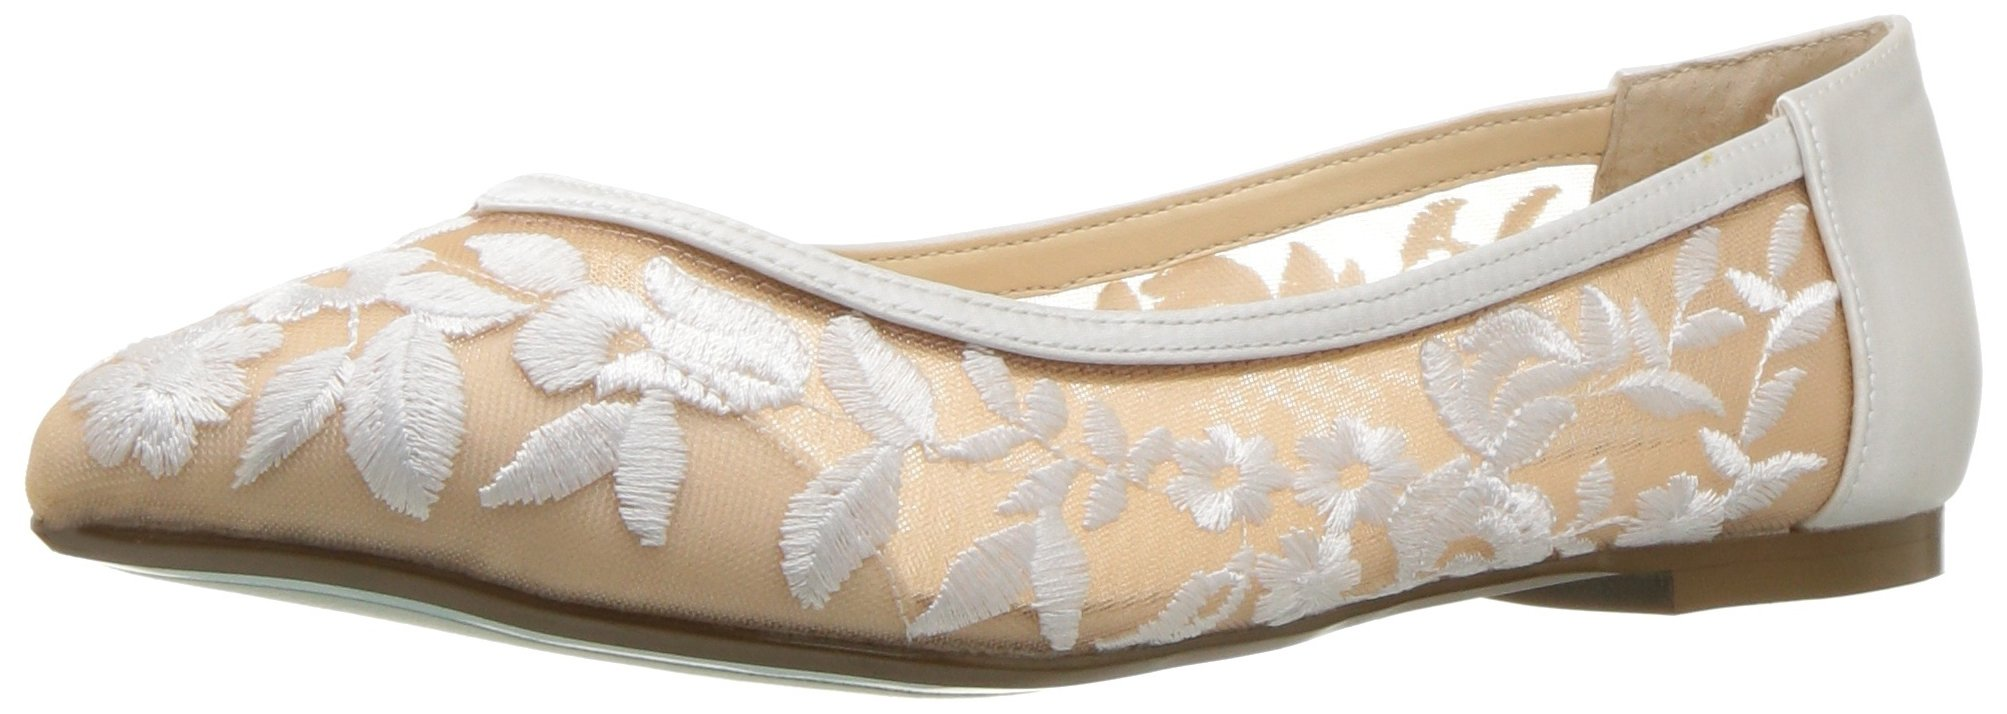 Blue by Betsey Johnson Women's Sb-Leah Ballet Flat, Ivory Fabric, 10 M US